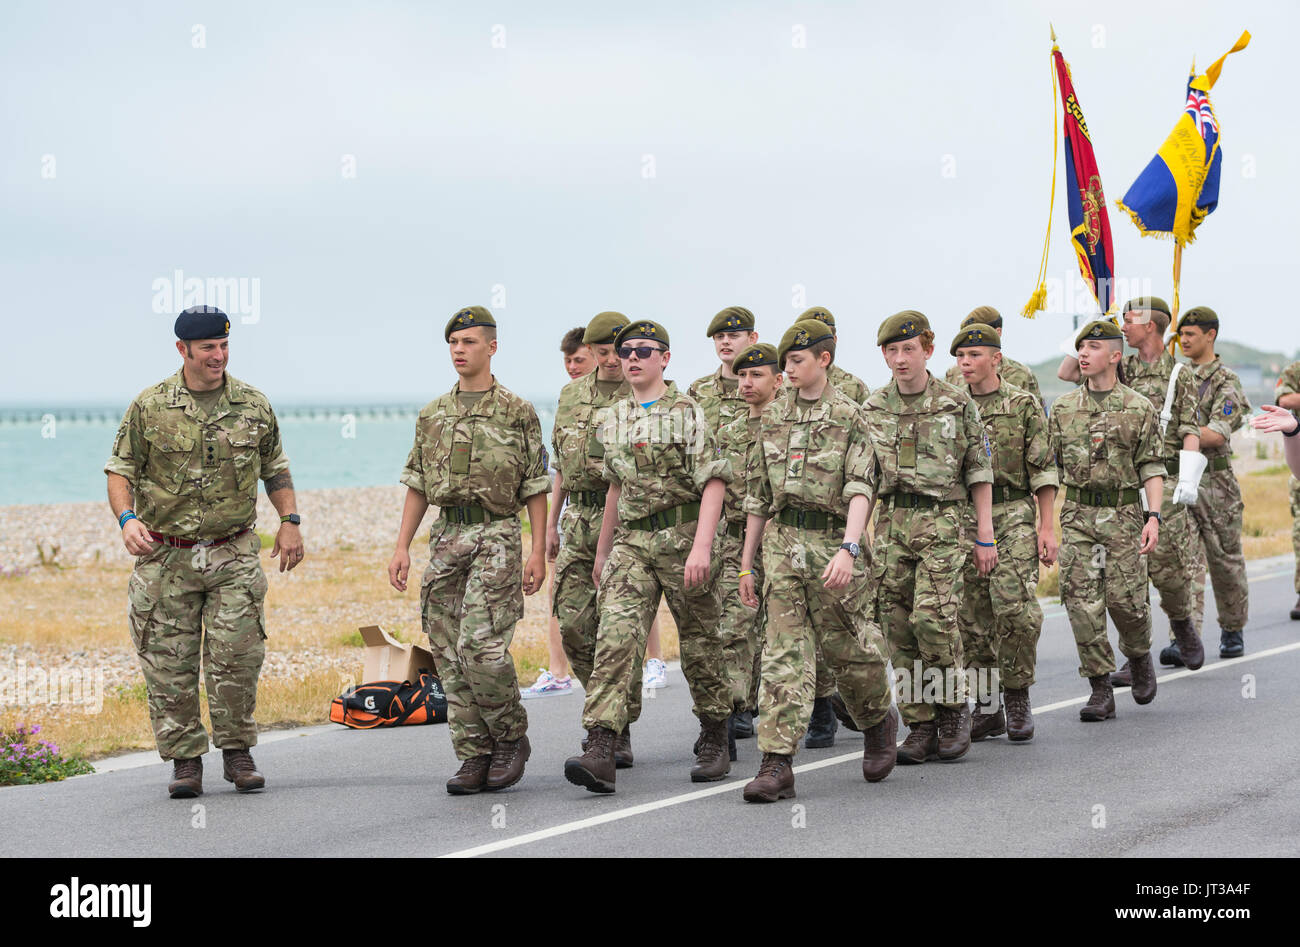 Army cadets from the Royal British Legion in Littlehampton marching at the 2017 Armed Forces Day event in Littlehampton, West Sussex, England, UK. - Stock Image